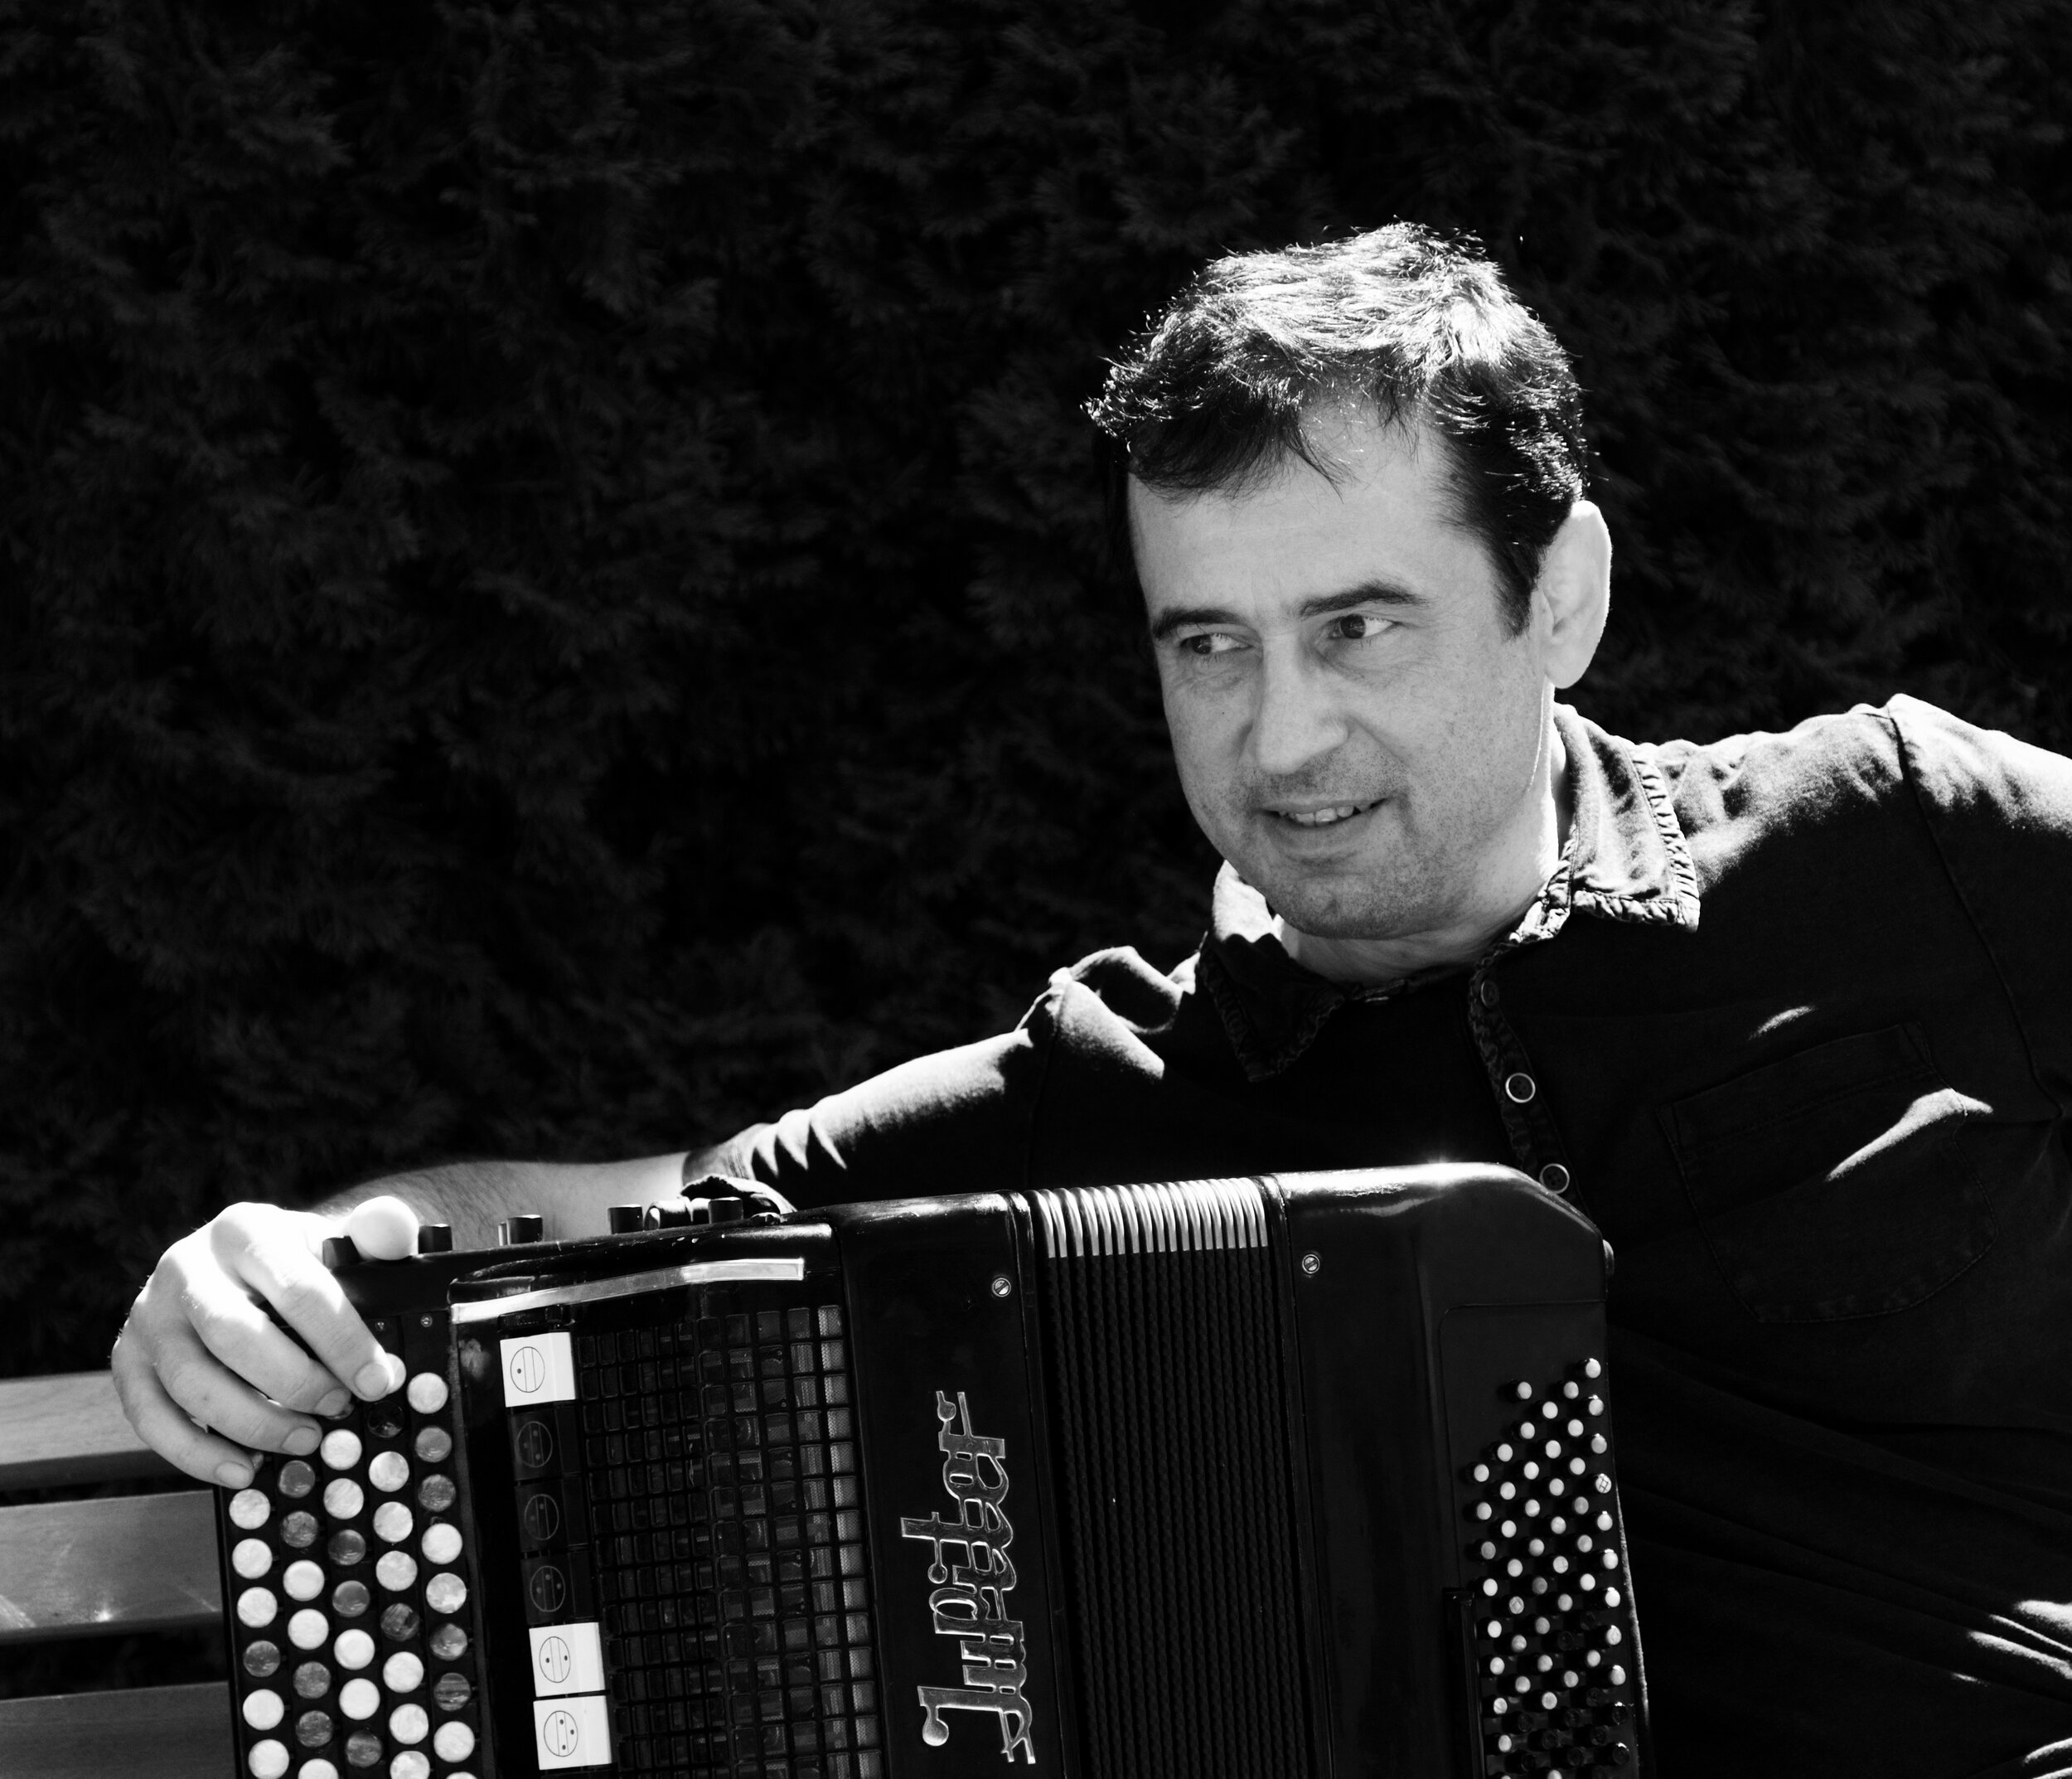 INTERNATIONAL AWARD-WINNING ACCORDIONIST SERGEI TELESHEV JOINS BALLET FANTASTIQUE'S MUSICAL ENSEMBLE AS MUSICIAN AND GUEST COMPOSER FOR BALLET FANTASTIQUE'S WORLD PREMIERE OF   NEVERMORE: STORIES OF EDGAR ALLAN POE   (PERFORMANCES OCT. 25-27, 2019 AT THE HULT CENTER FOR THE PERFORMING ARTS).